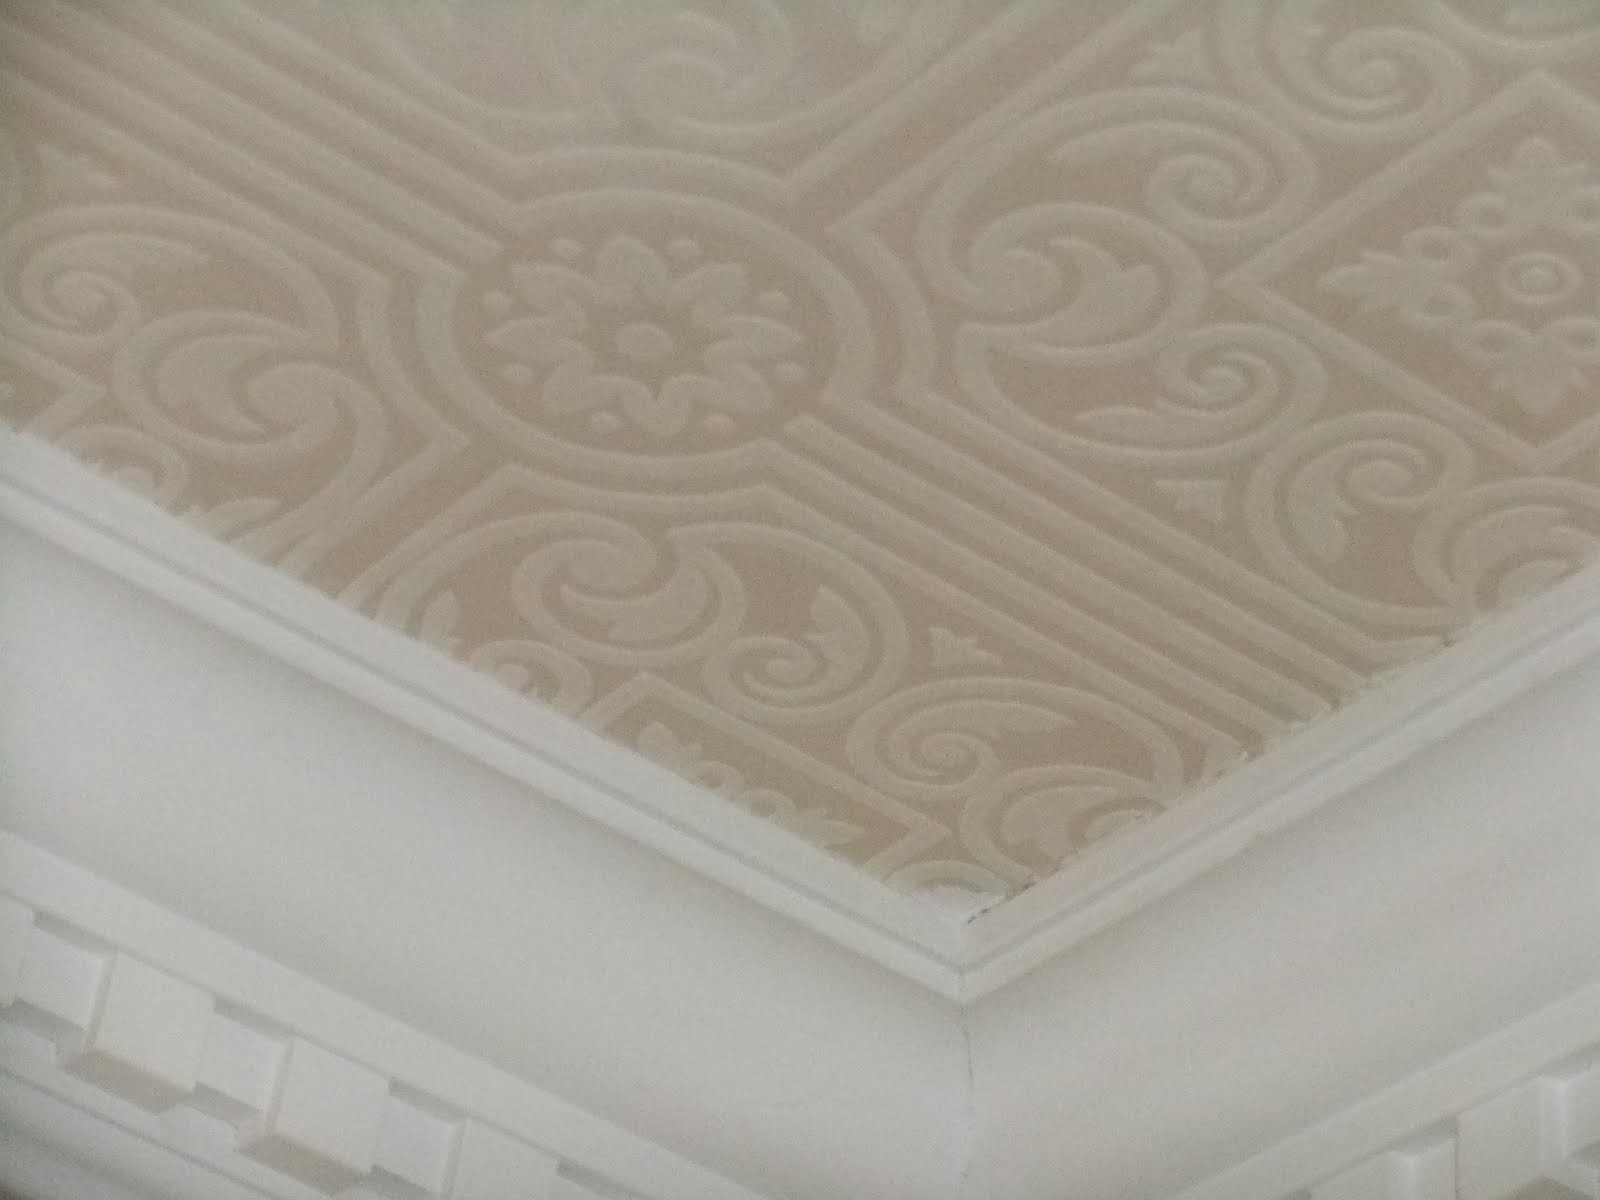 Suburban retreat wallpapering a ceiling for Ceiling wallpaper